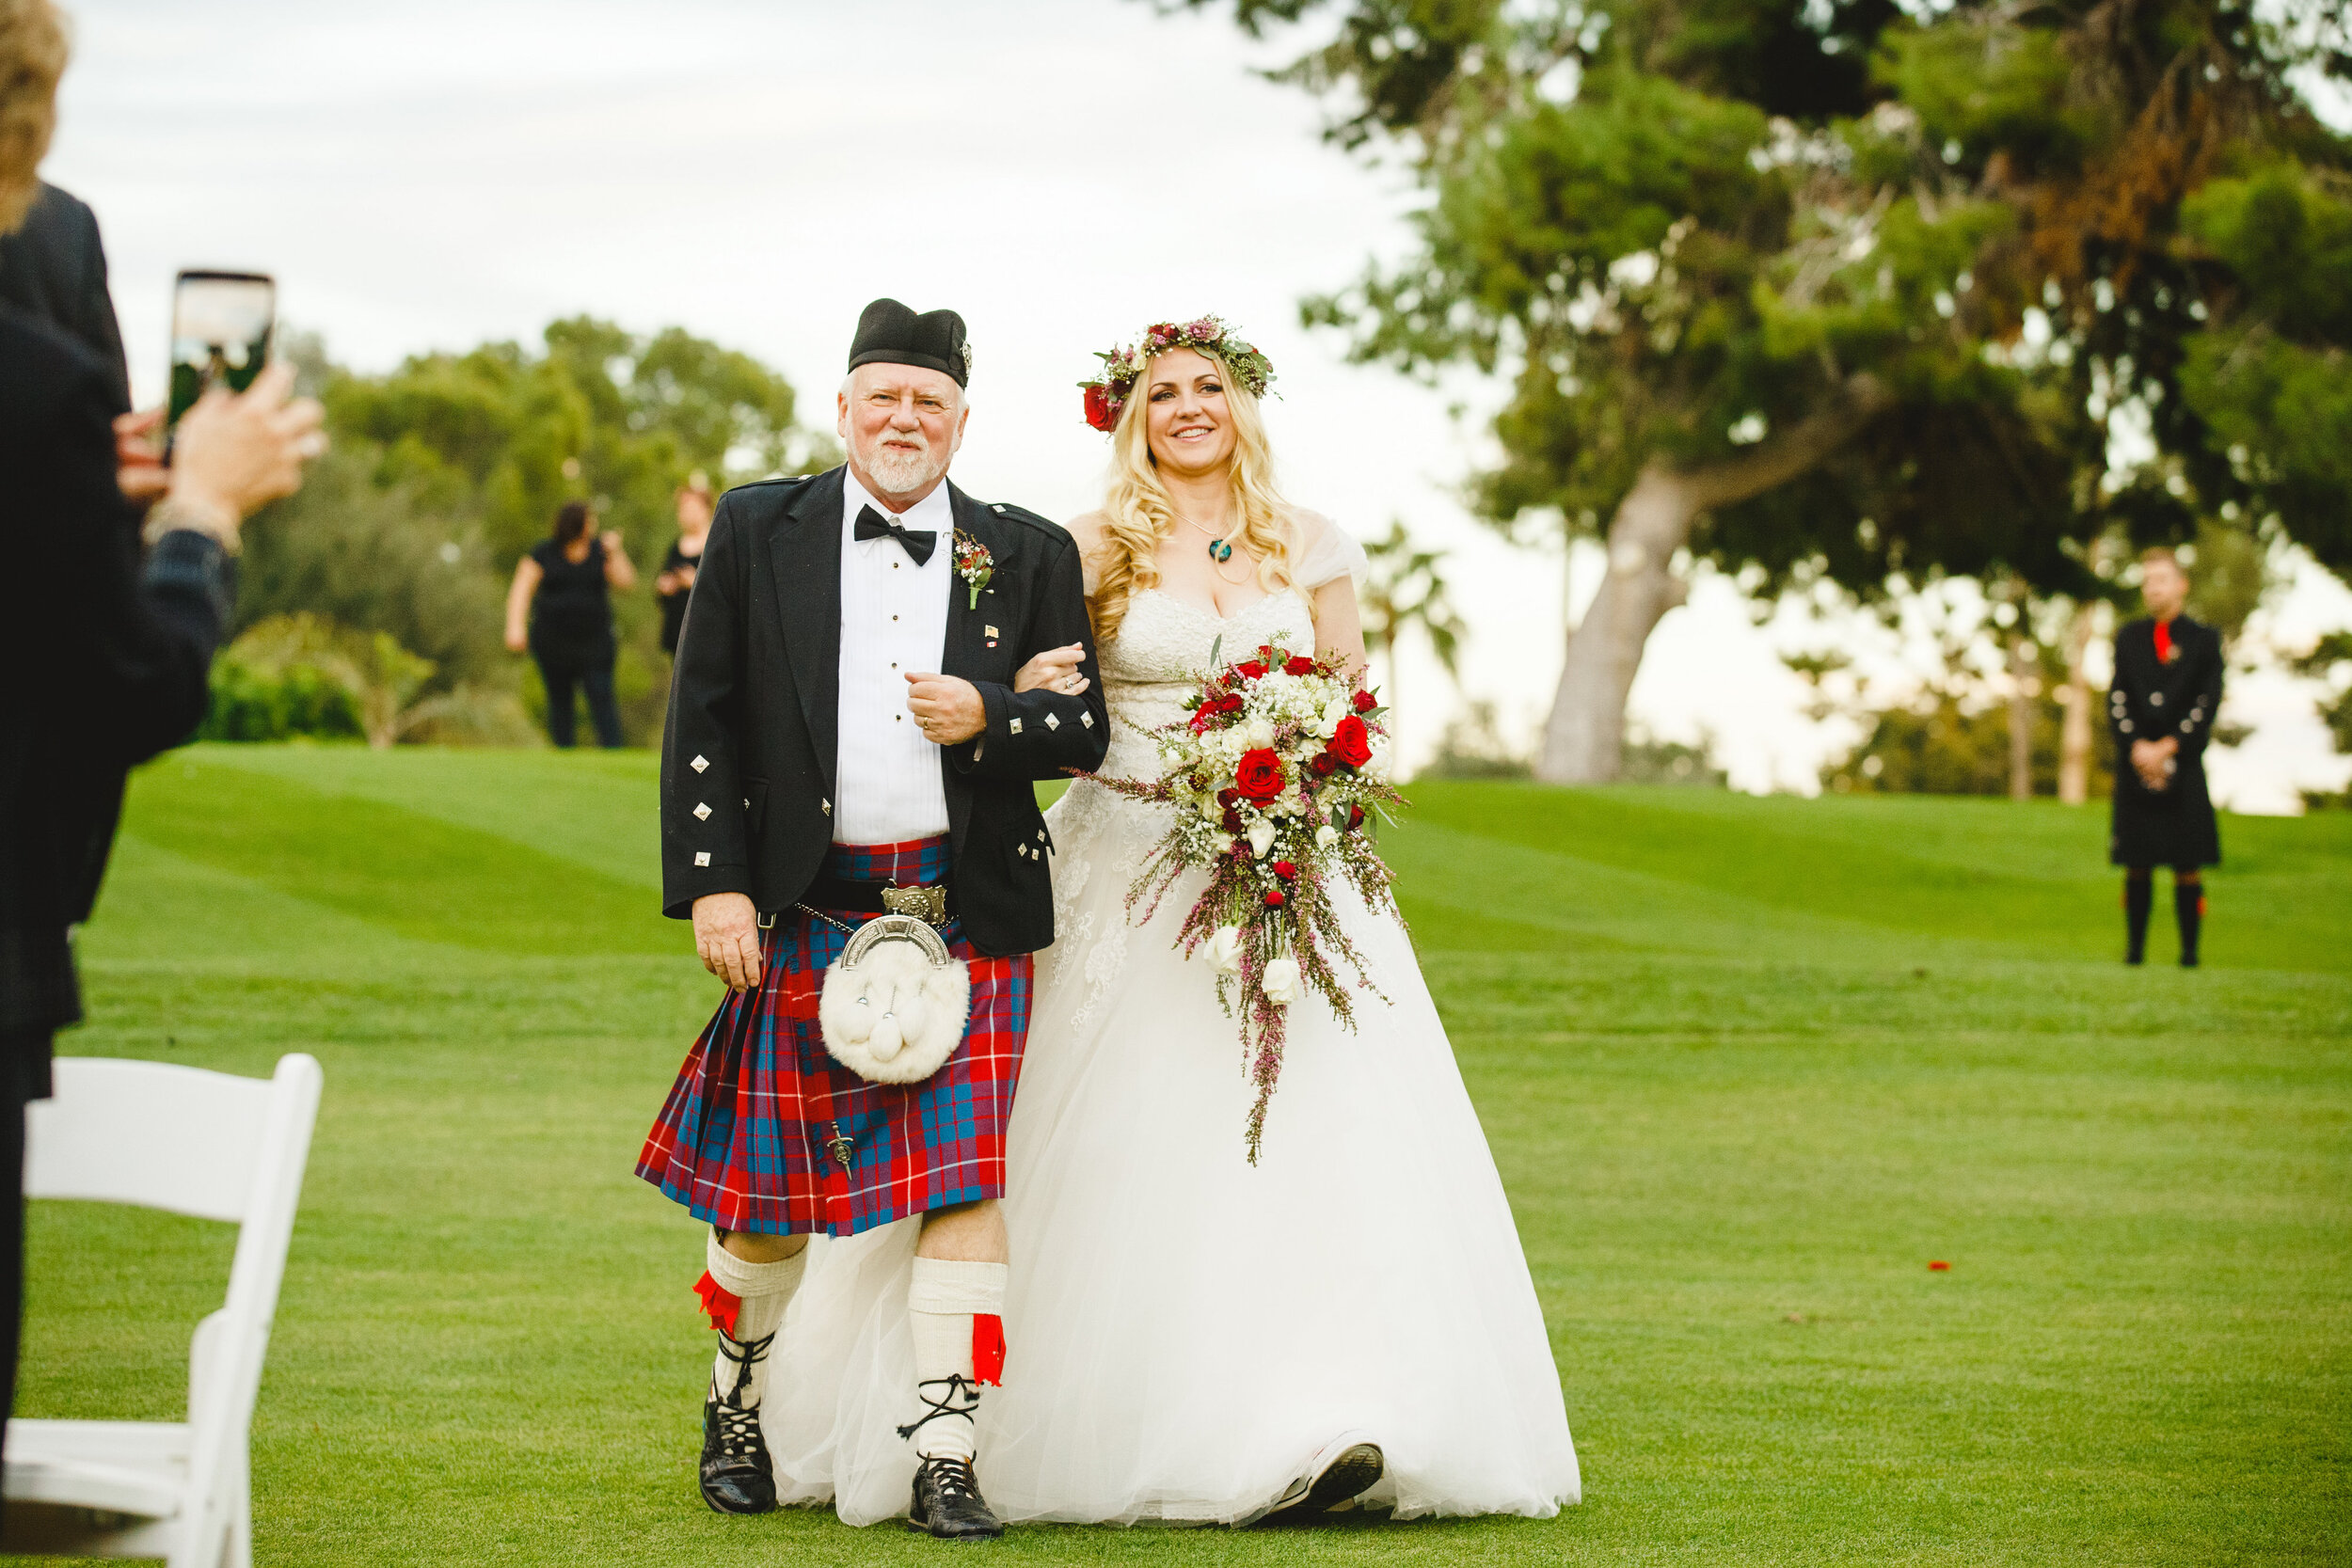 Alternative bride walking down the aisle with father wearing traditional Scottish outfits Kilt Scottish styled wedding.jpg